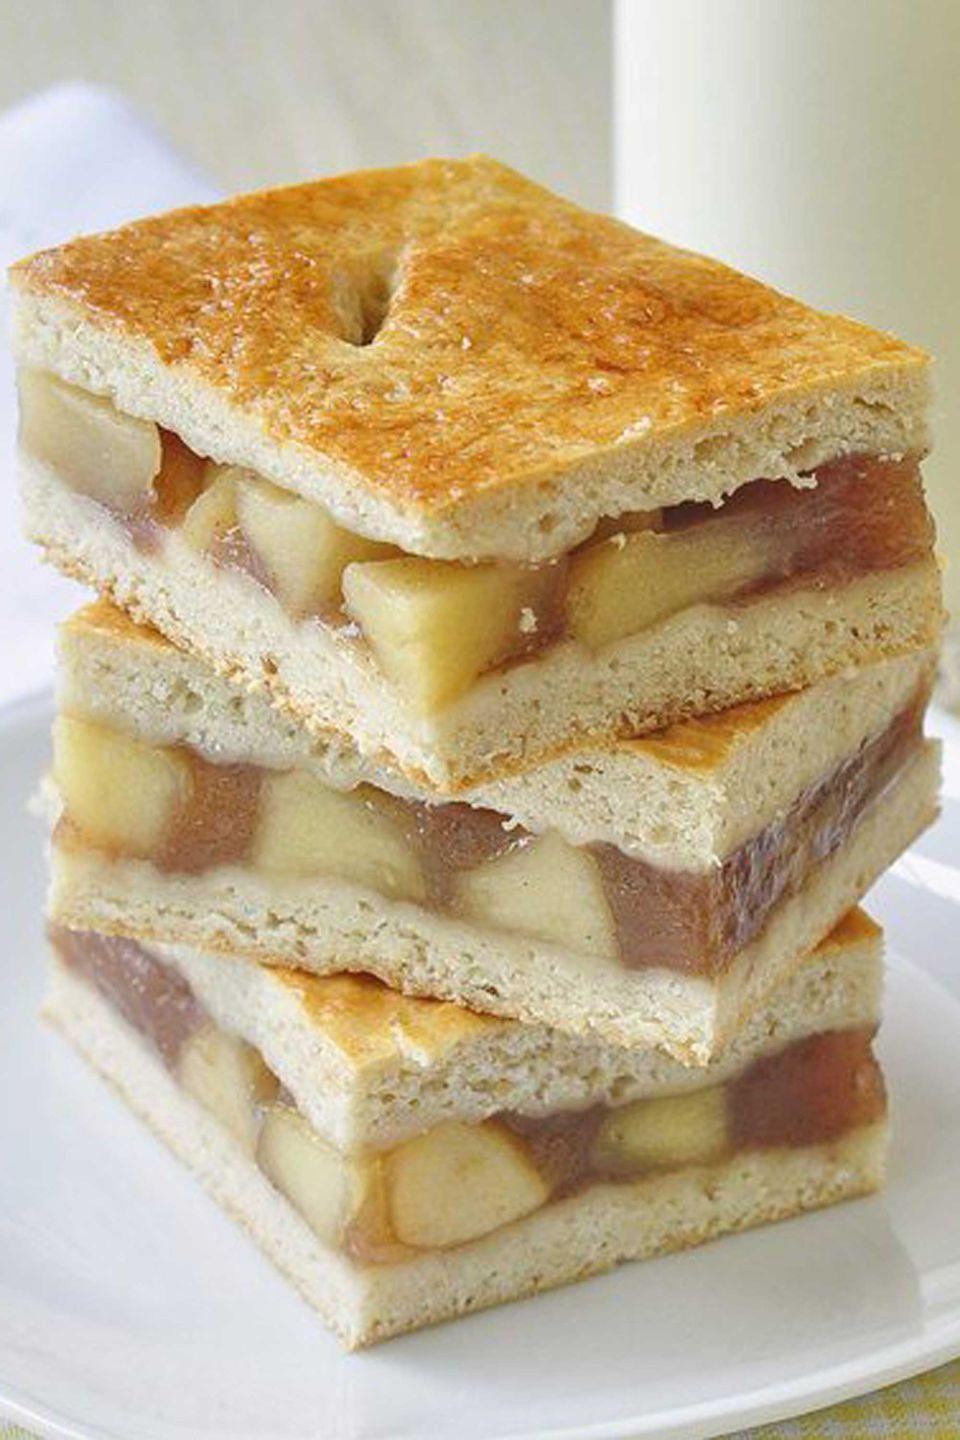 """<p>Dessert has never been so easy to eat, thanks to this apple filling that's sandwiched between two soft pastries.</p><p><strong>Get the recipe at <a rel=""""nofollow noopener"""" href=""""http://www.rockrecipes.com/apple-cobbler-bars/"""" target=""""_blank"""" data-ylk=""""slk:Rock Recipes"""" class=""""link rapid-noclick-resp"""">Rock Recipes</a>.</strong><br></p><p><a rel=""""nofollow noopener"""" href=""""https://www.amazon.com/Hamilton-Beach-70730-Processor-Vegetable/dp/B008J8MJIQ"""" target=""""_blank"""" data-ylk=""""slk:SHOP FOOD PROCESSORS"""" class=""""link rapid-noclick-resp"""">SHOP FOOD PROCESSORS</a></p>"""